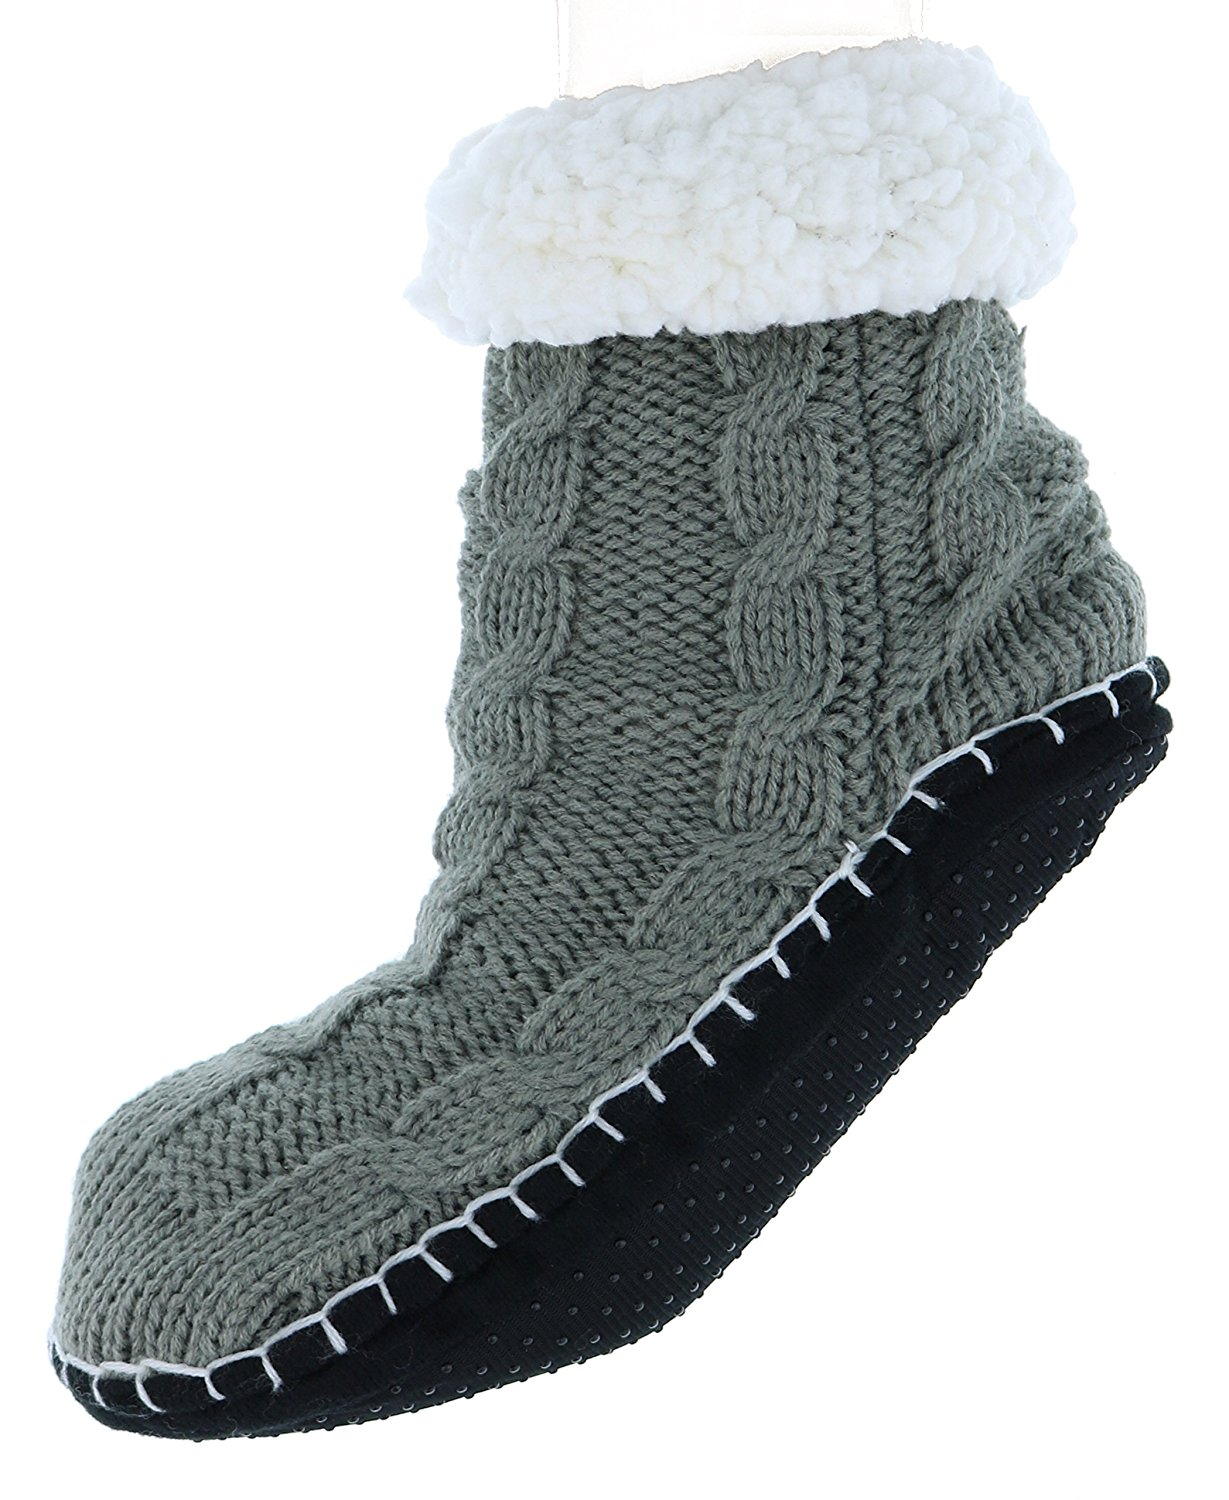 Cheap Cable Knit Slipper Boots Find Cable Knit Slipper Boots Deals